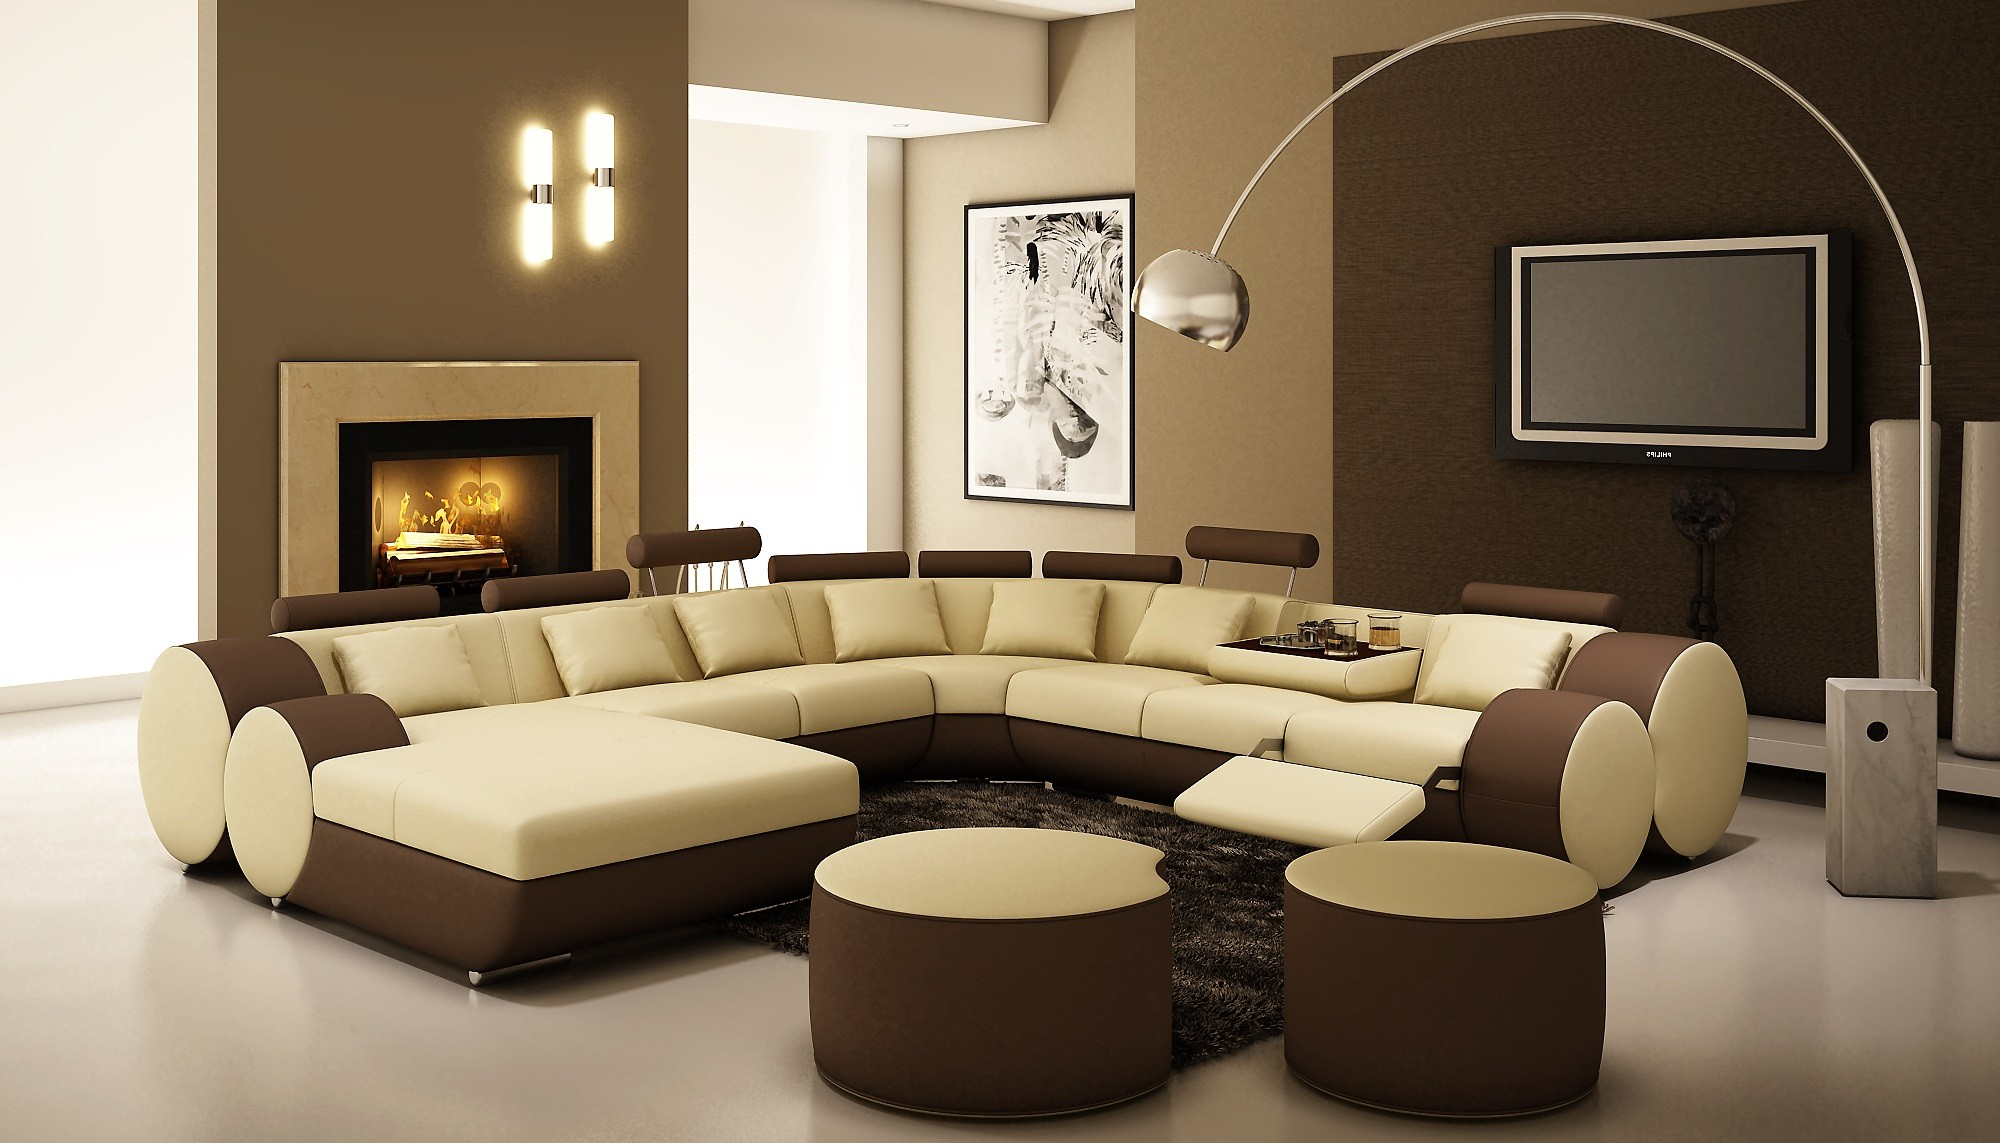 sofa colour combination dog bed blanket 20 modern floor lamps design ideas with pictures hgnv com